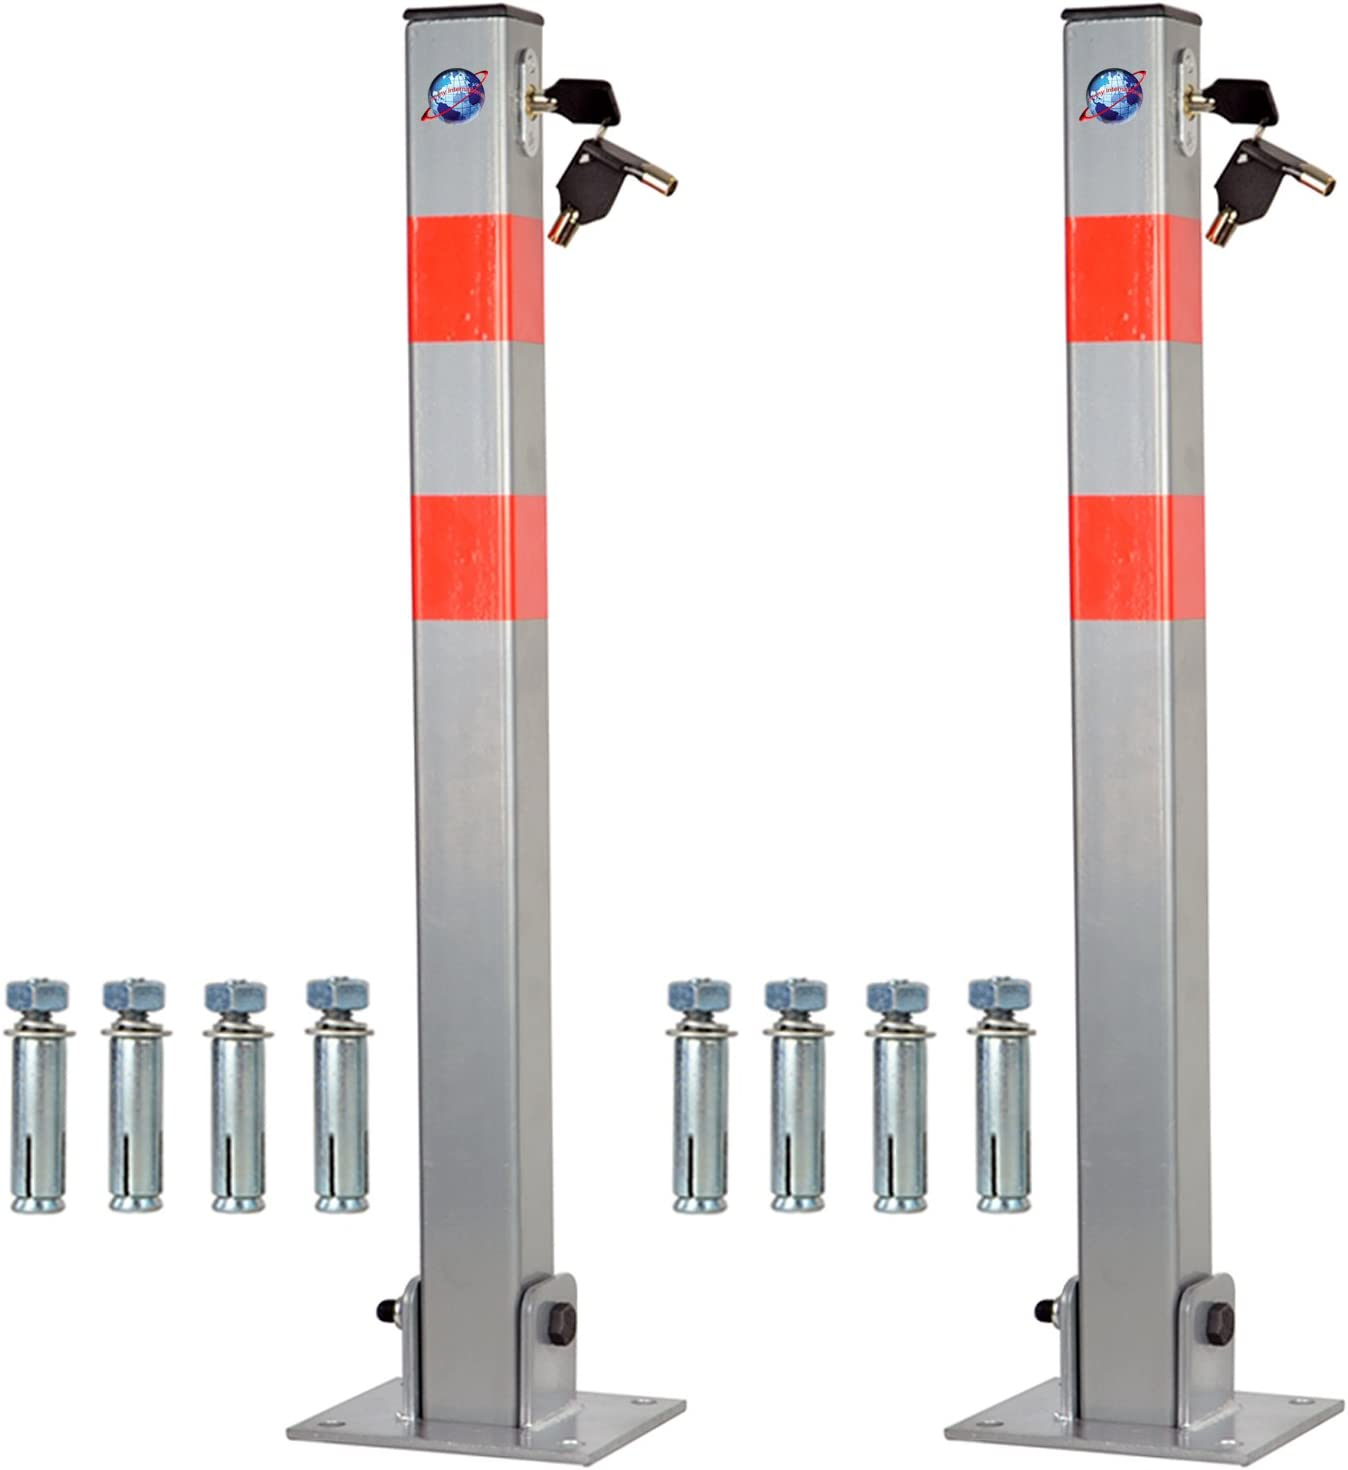 2 PROGEN Heavy duty Car Parking Folding locking Barrier Bollard for Driveways Vehicles and Security Posts car safety with reflective red stripes with 3 keys for barrier